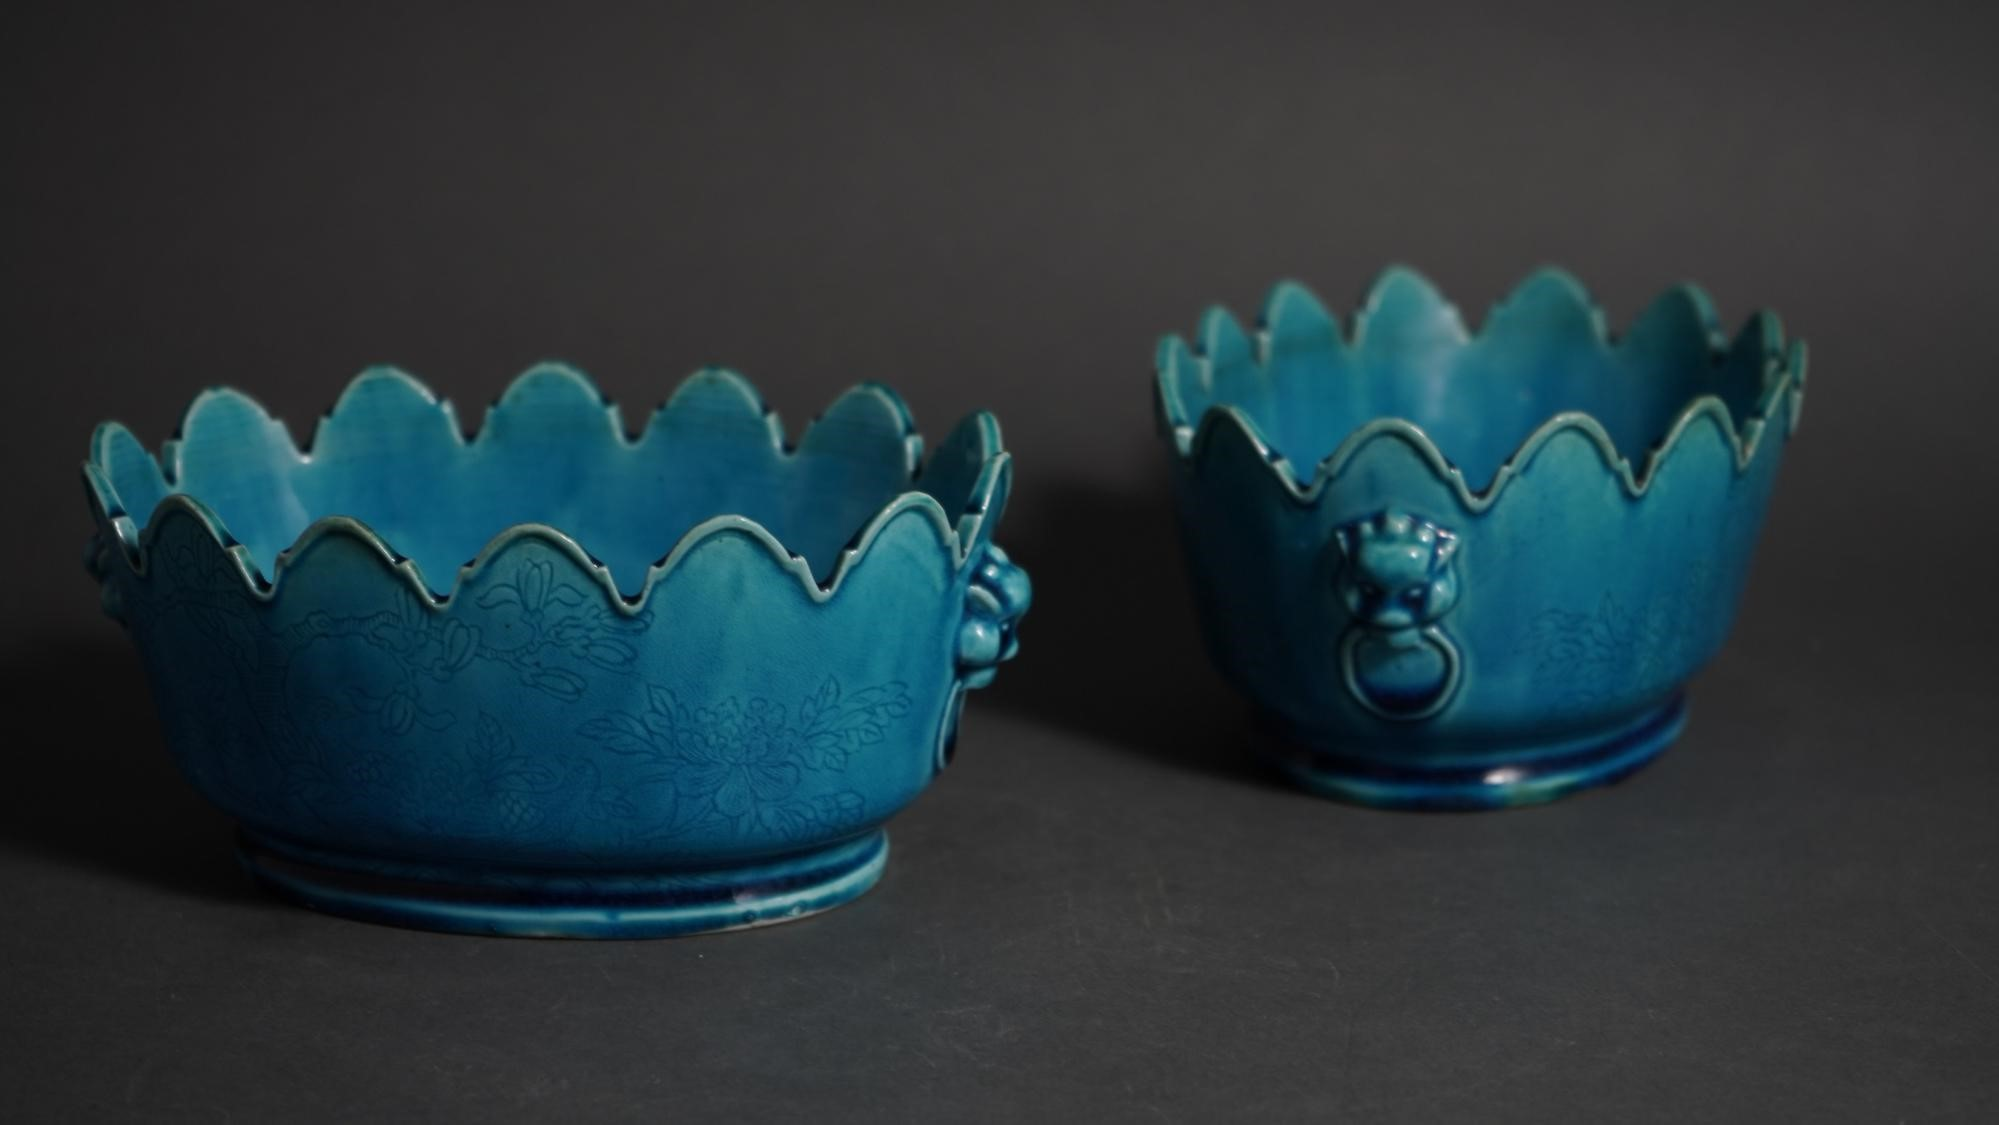 Pair Of Chinese Turquoise Blue Glazed Oval Porcelain Monteiths With Incised Bird And Floral Motifs Qianlong Period (1736-1795